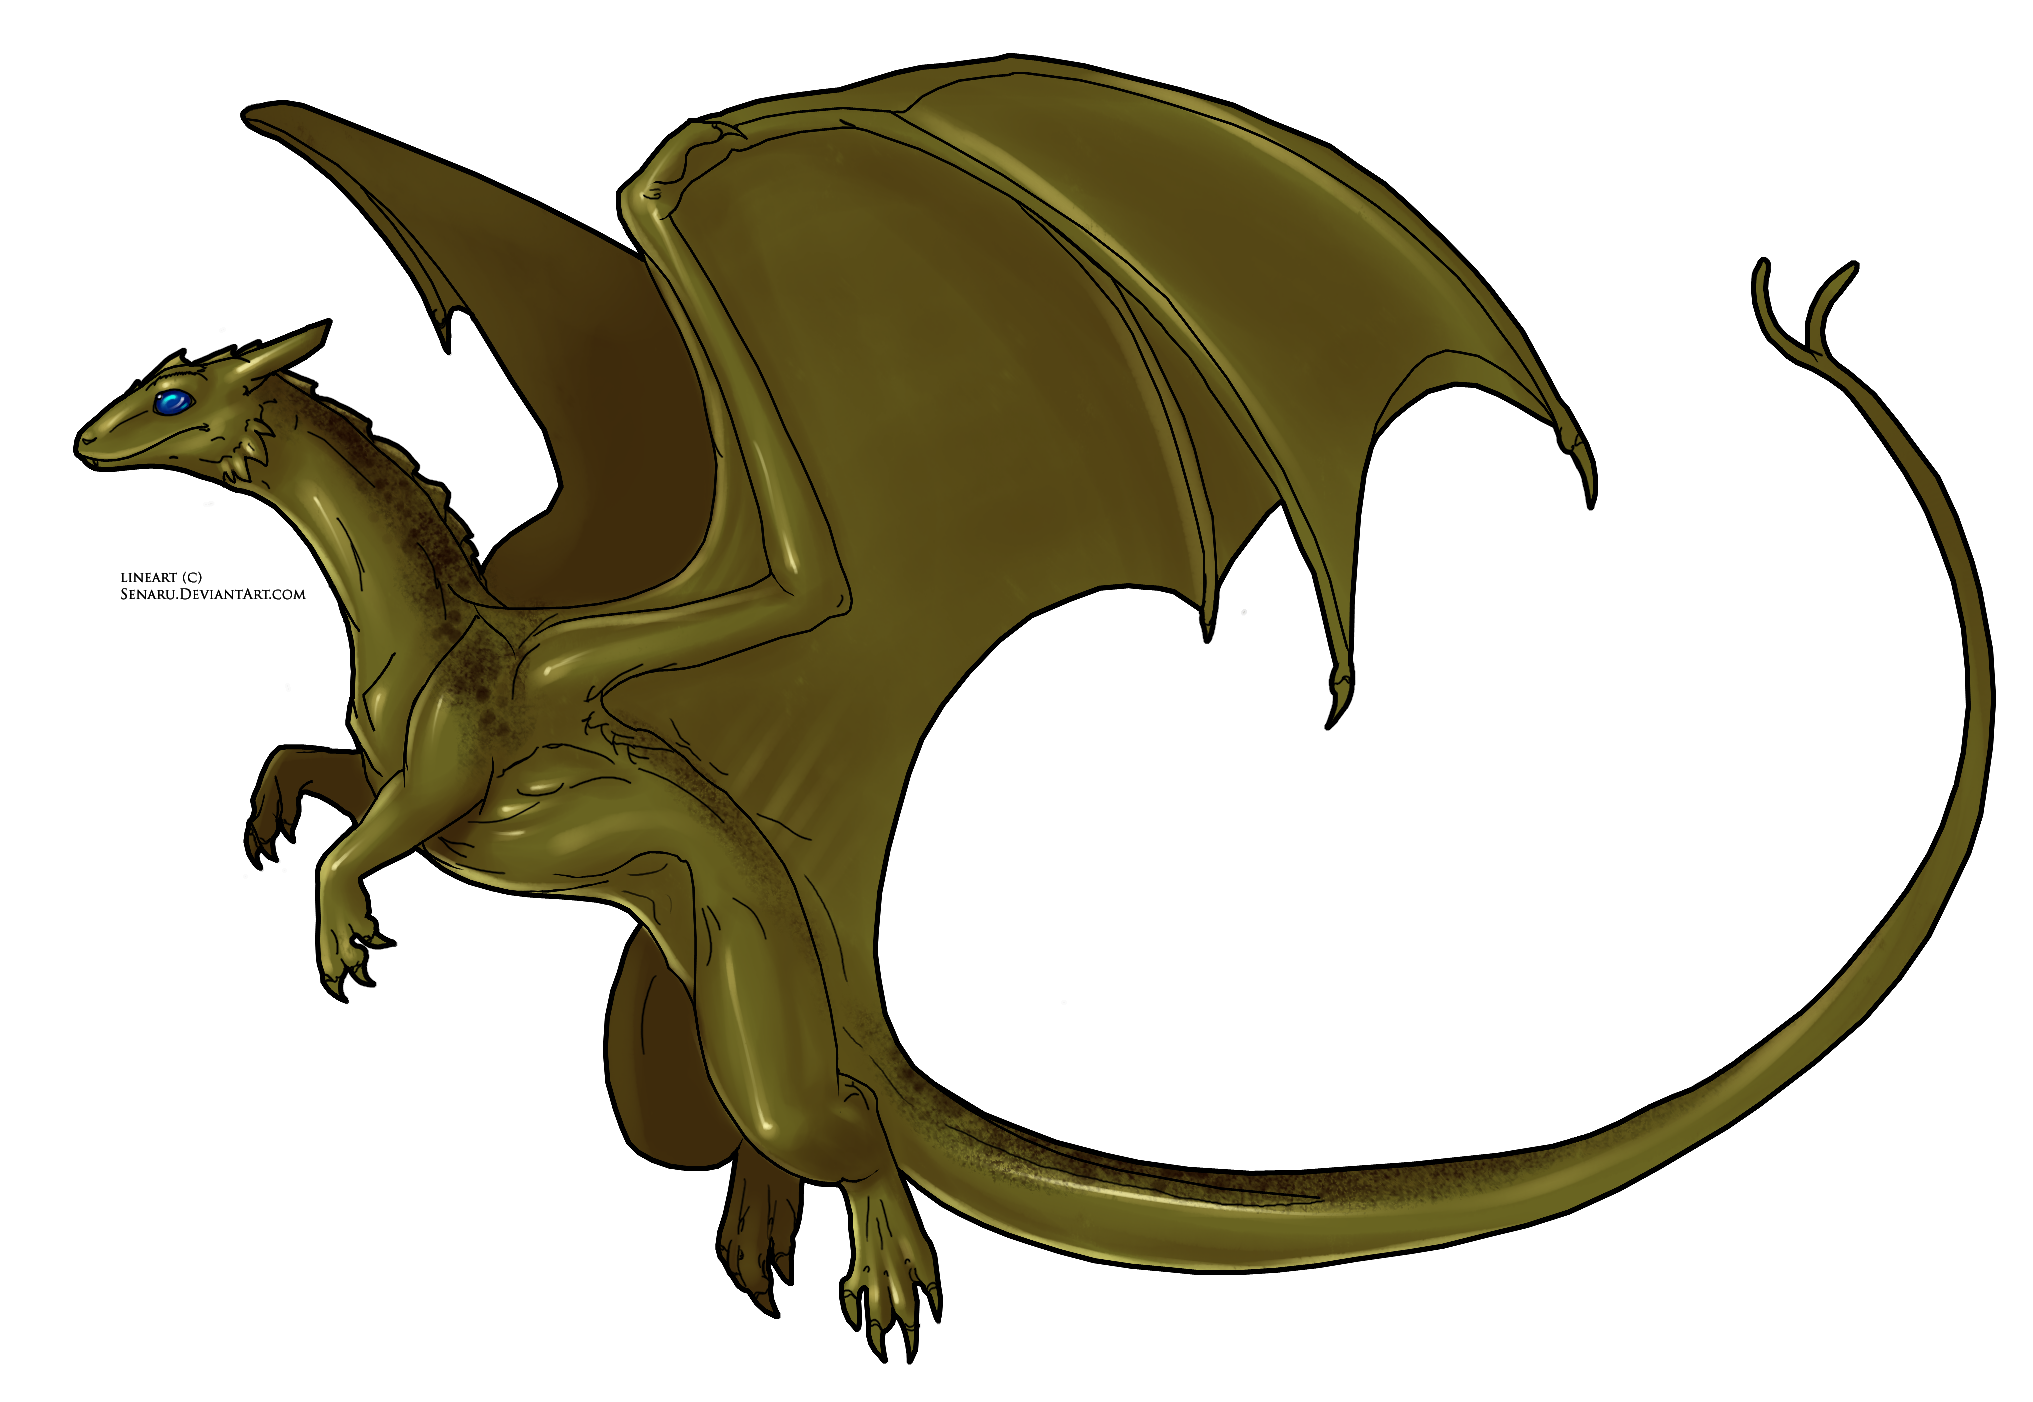 petromarth_by_shelacula-db720g5.png